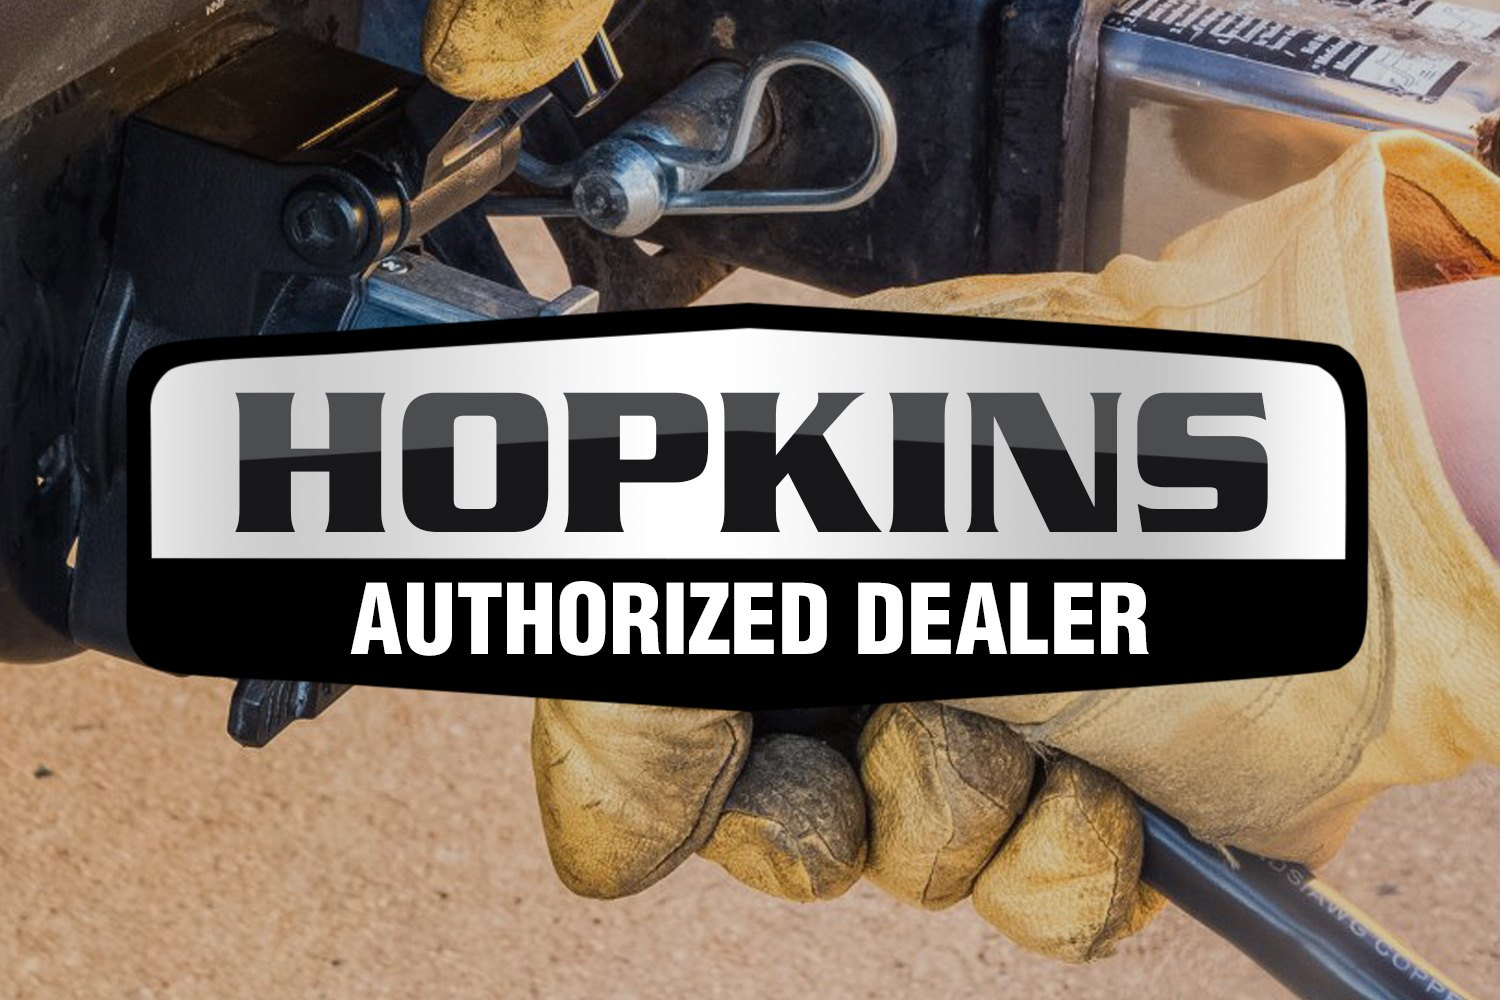 hight resolution of hopkins towing authorized dealer